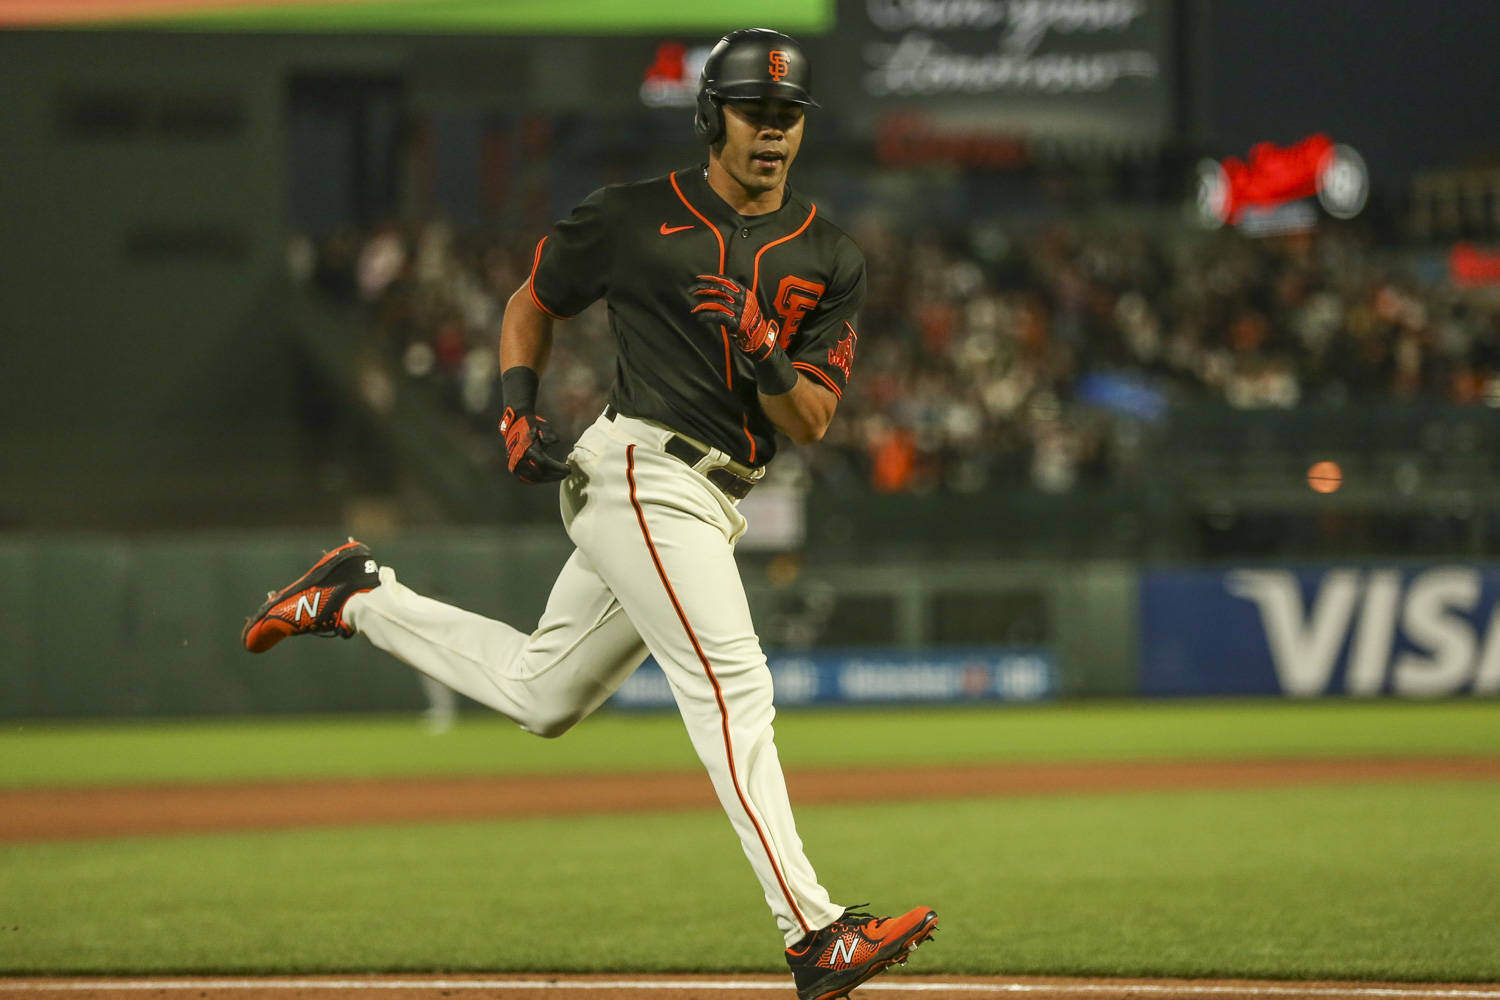 Giants first baseman LaMonte Wade Jr. homered in a game against the A's at Oracle Park on June 26, 2021. (Christopher Victorio/Special to The Examiner)